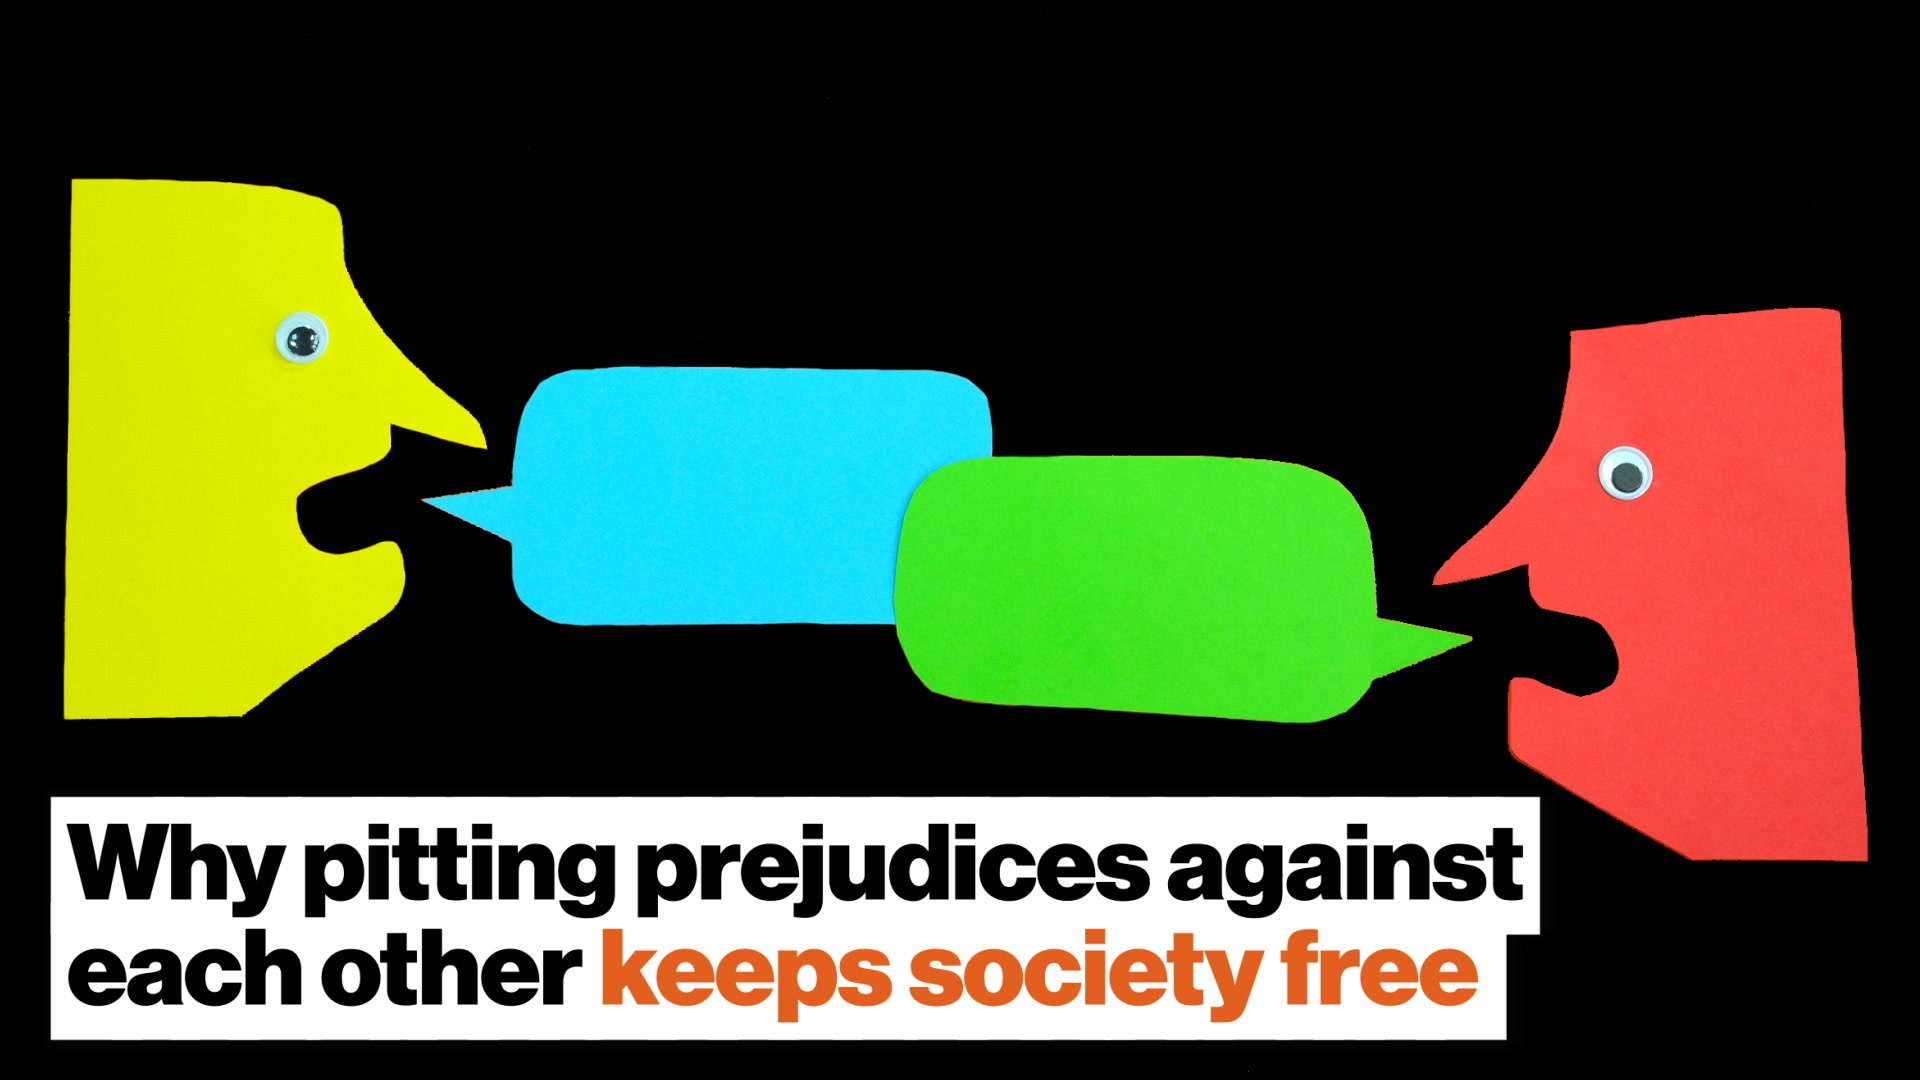 Why pitting prejudices against each other keeps society free